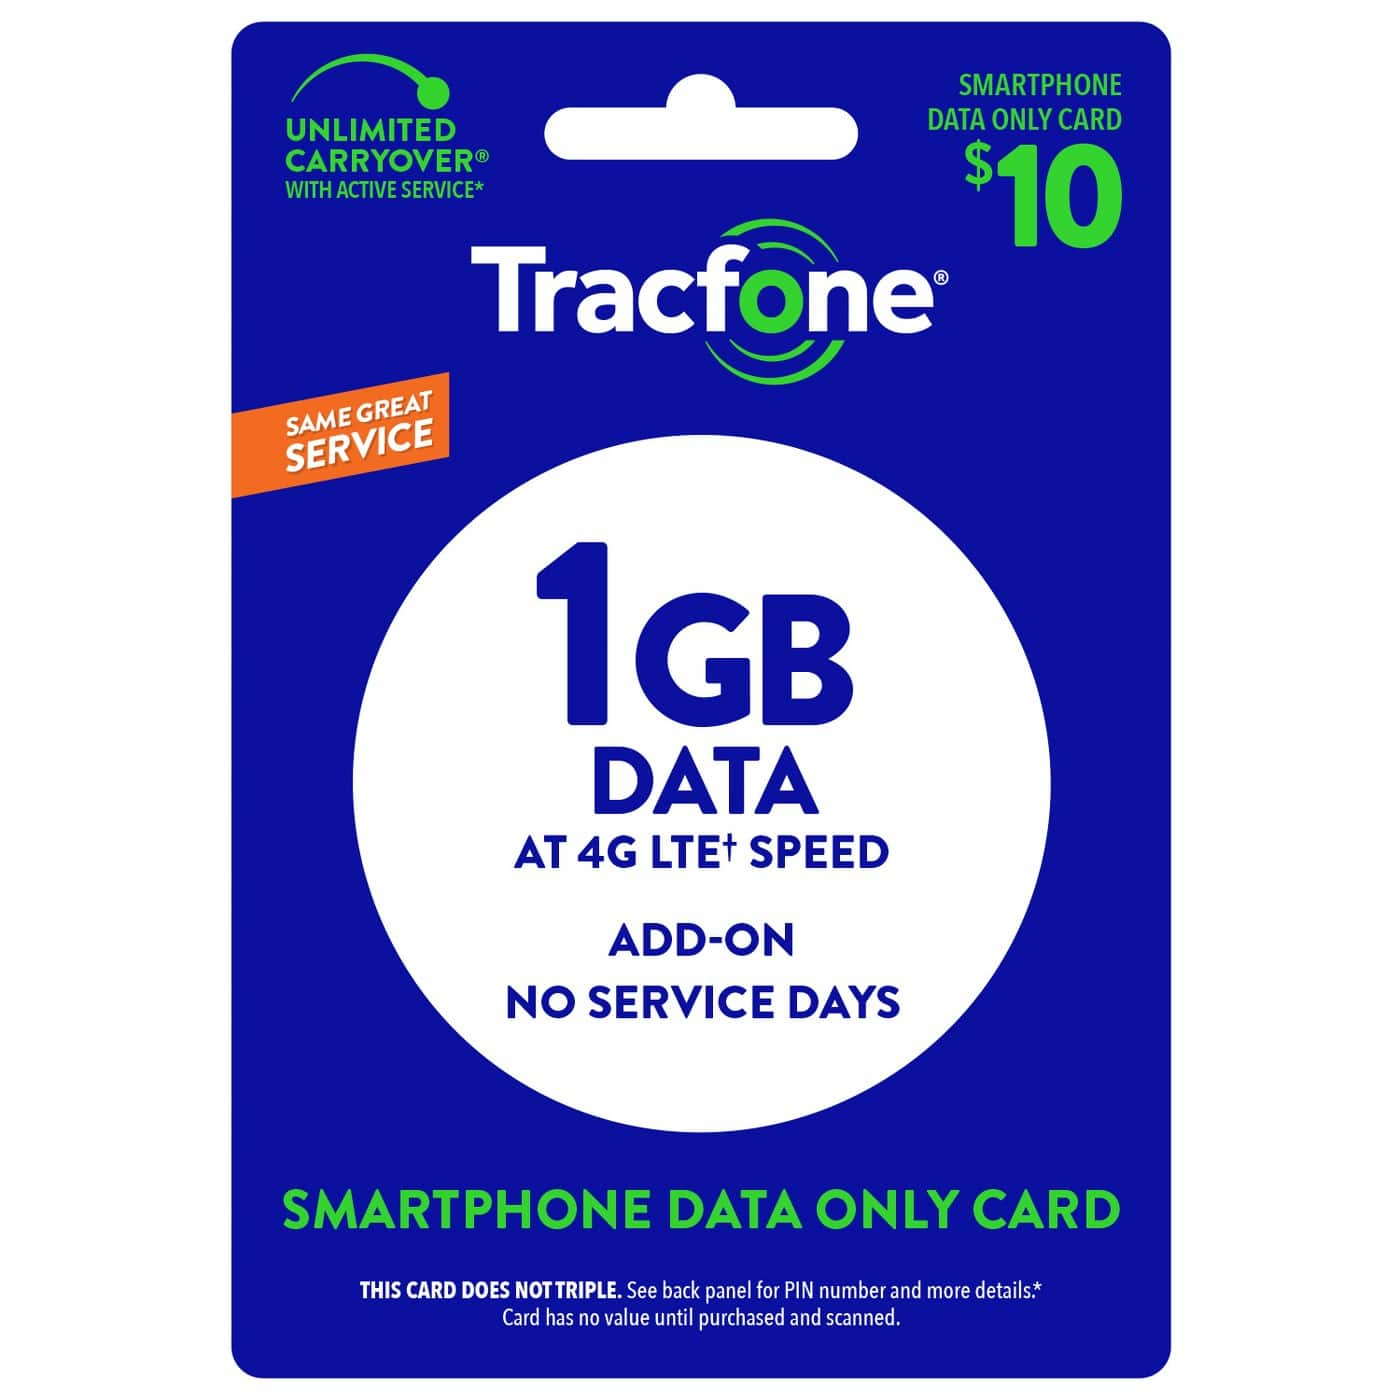 Tracfone data deal - Target com - $10 (or less) for 1 5GB